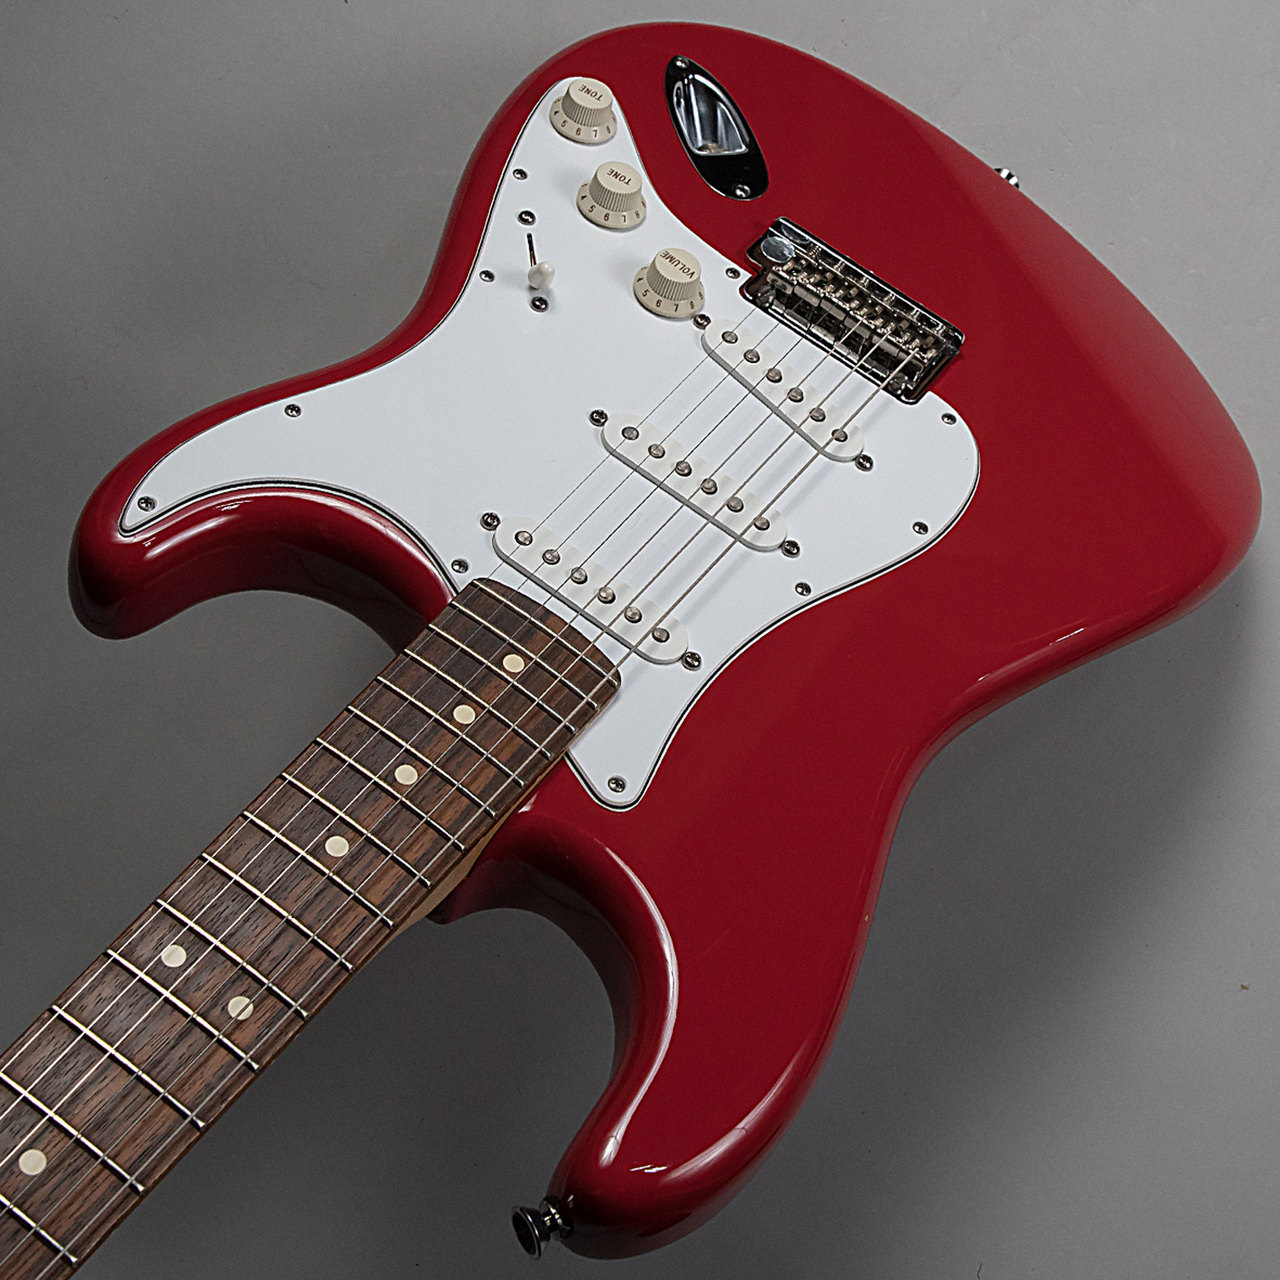 American Standard Stratocasterのケース・その他画像